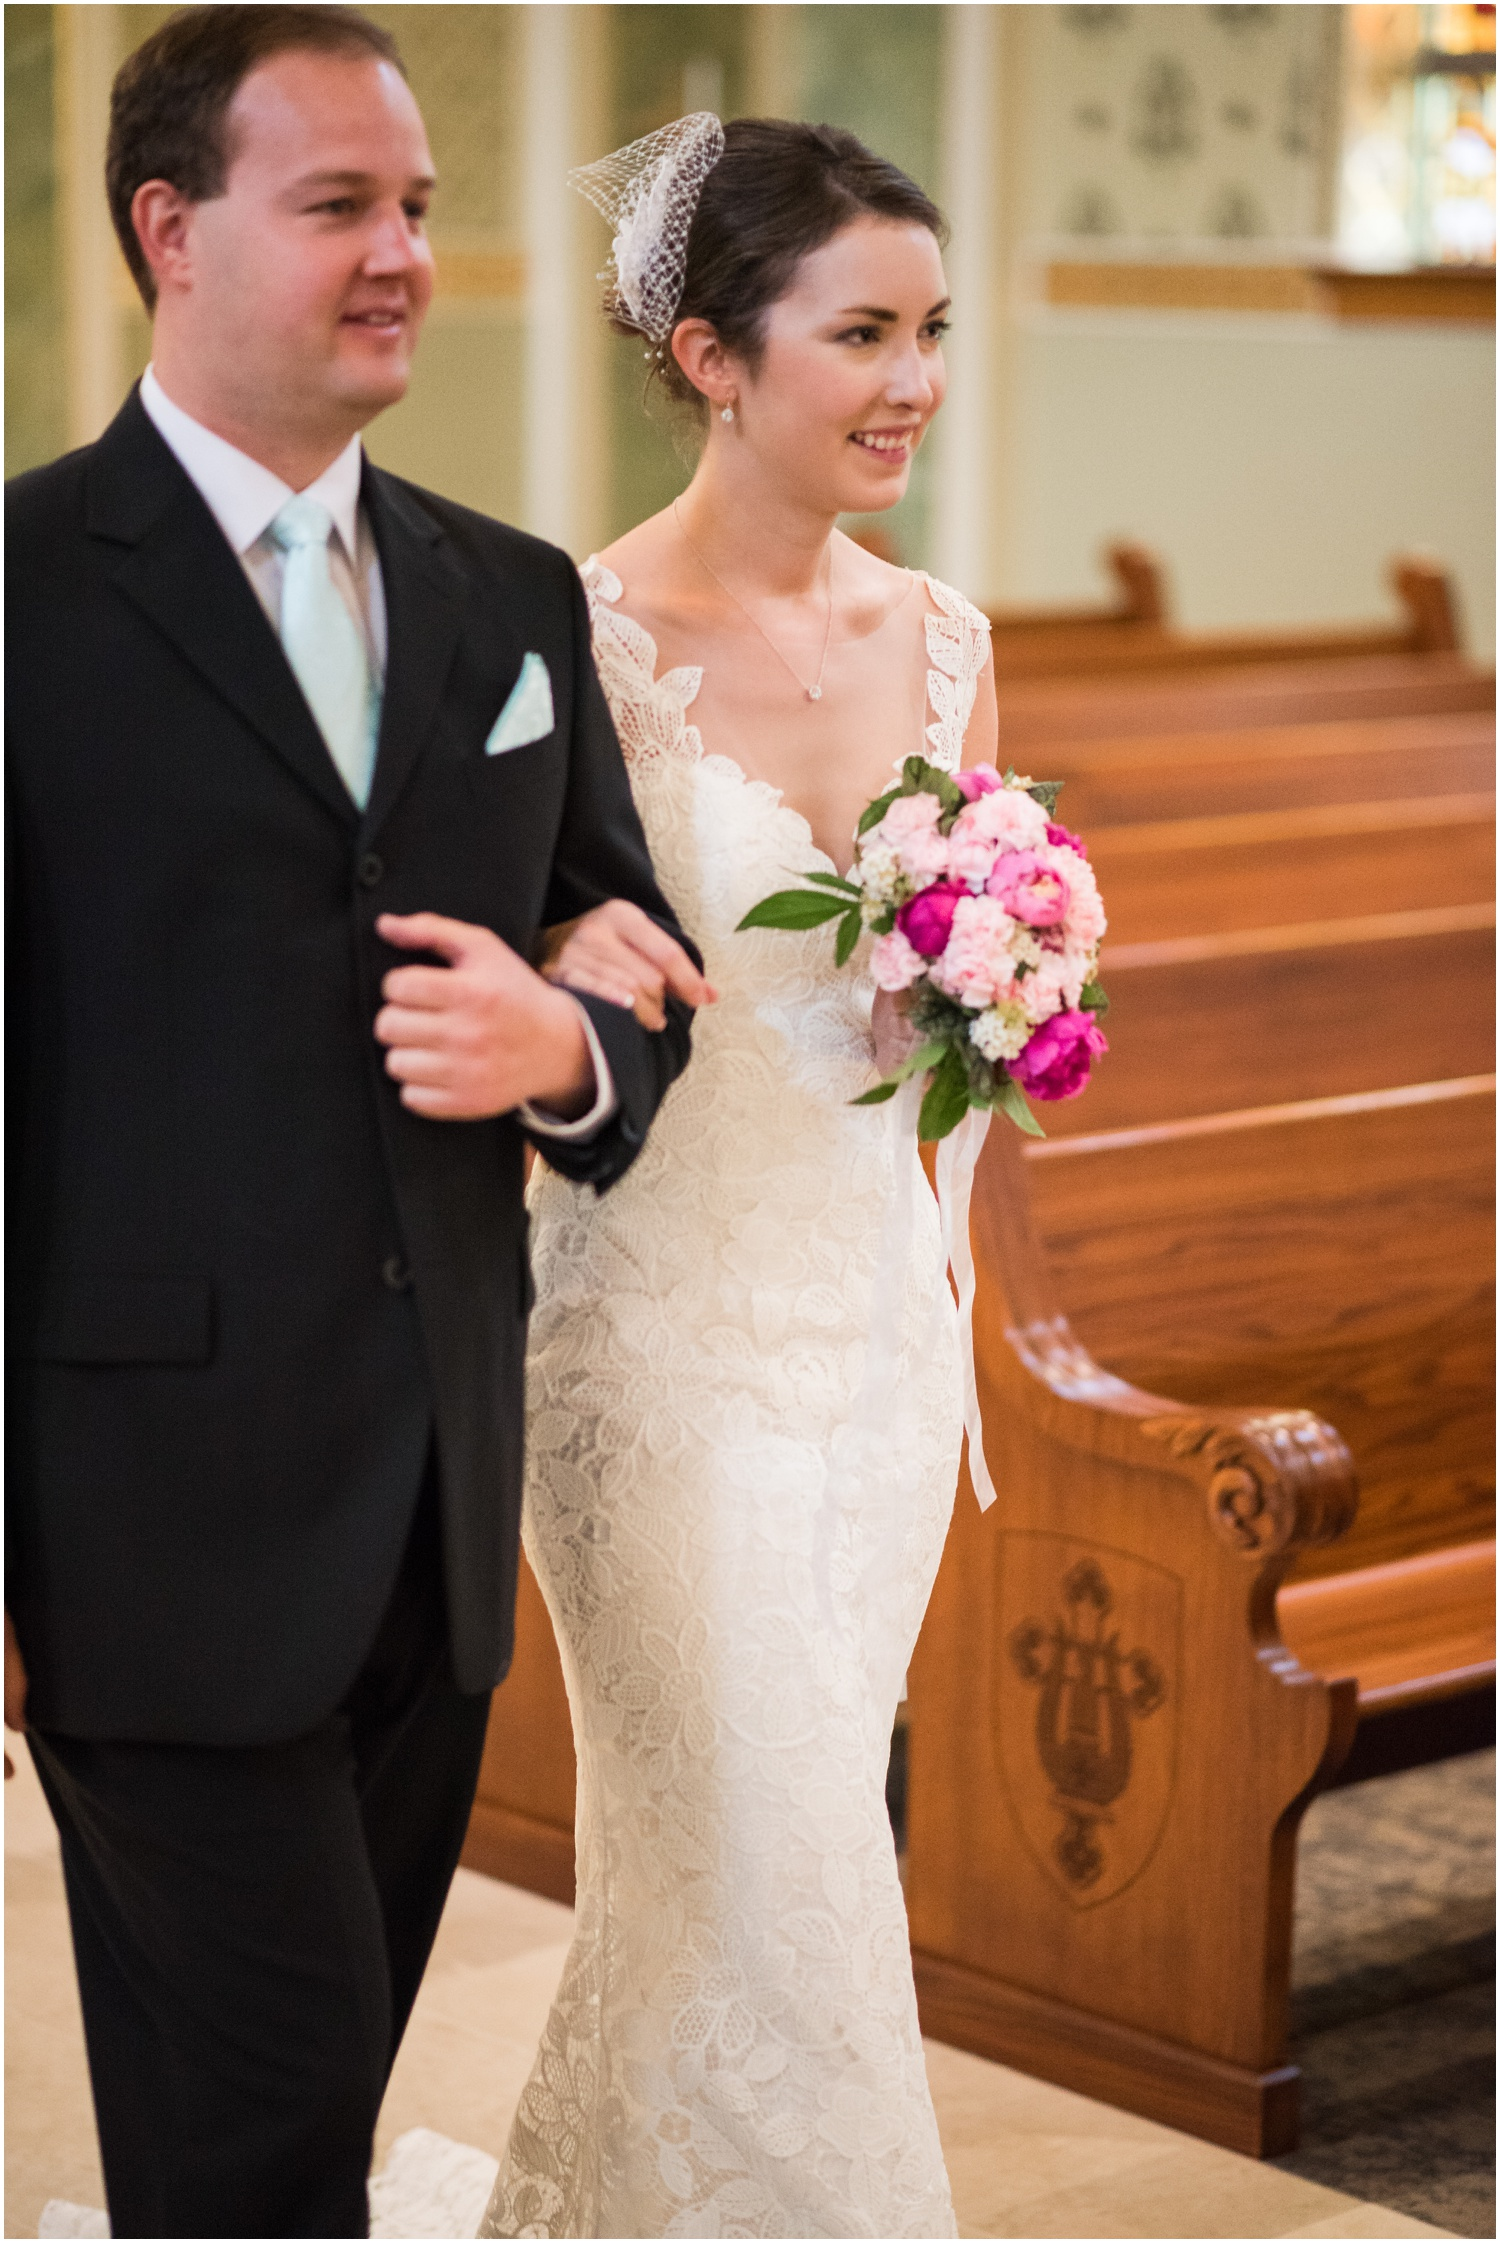 WISCONSIN DELLS WEDDING PHOTOGRAPHER | ST. CECILIA CATHOLIC CHURCH | WISCONSIN DELLS, WI | WEDDING_0223.jpg